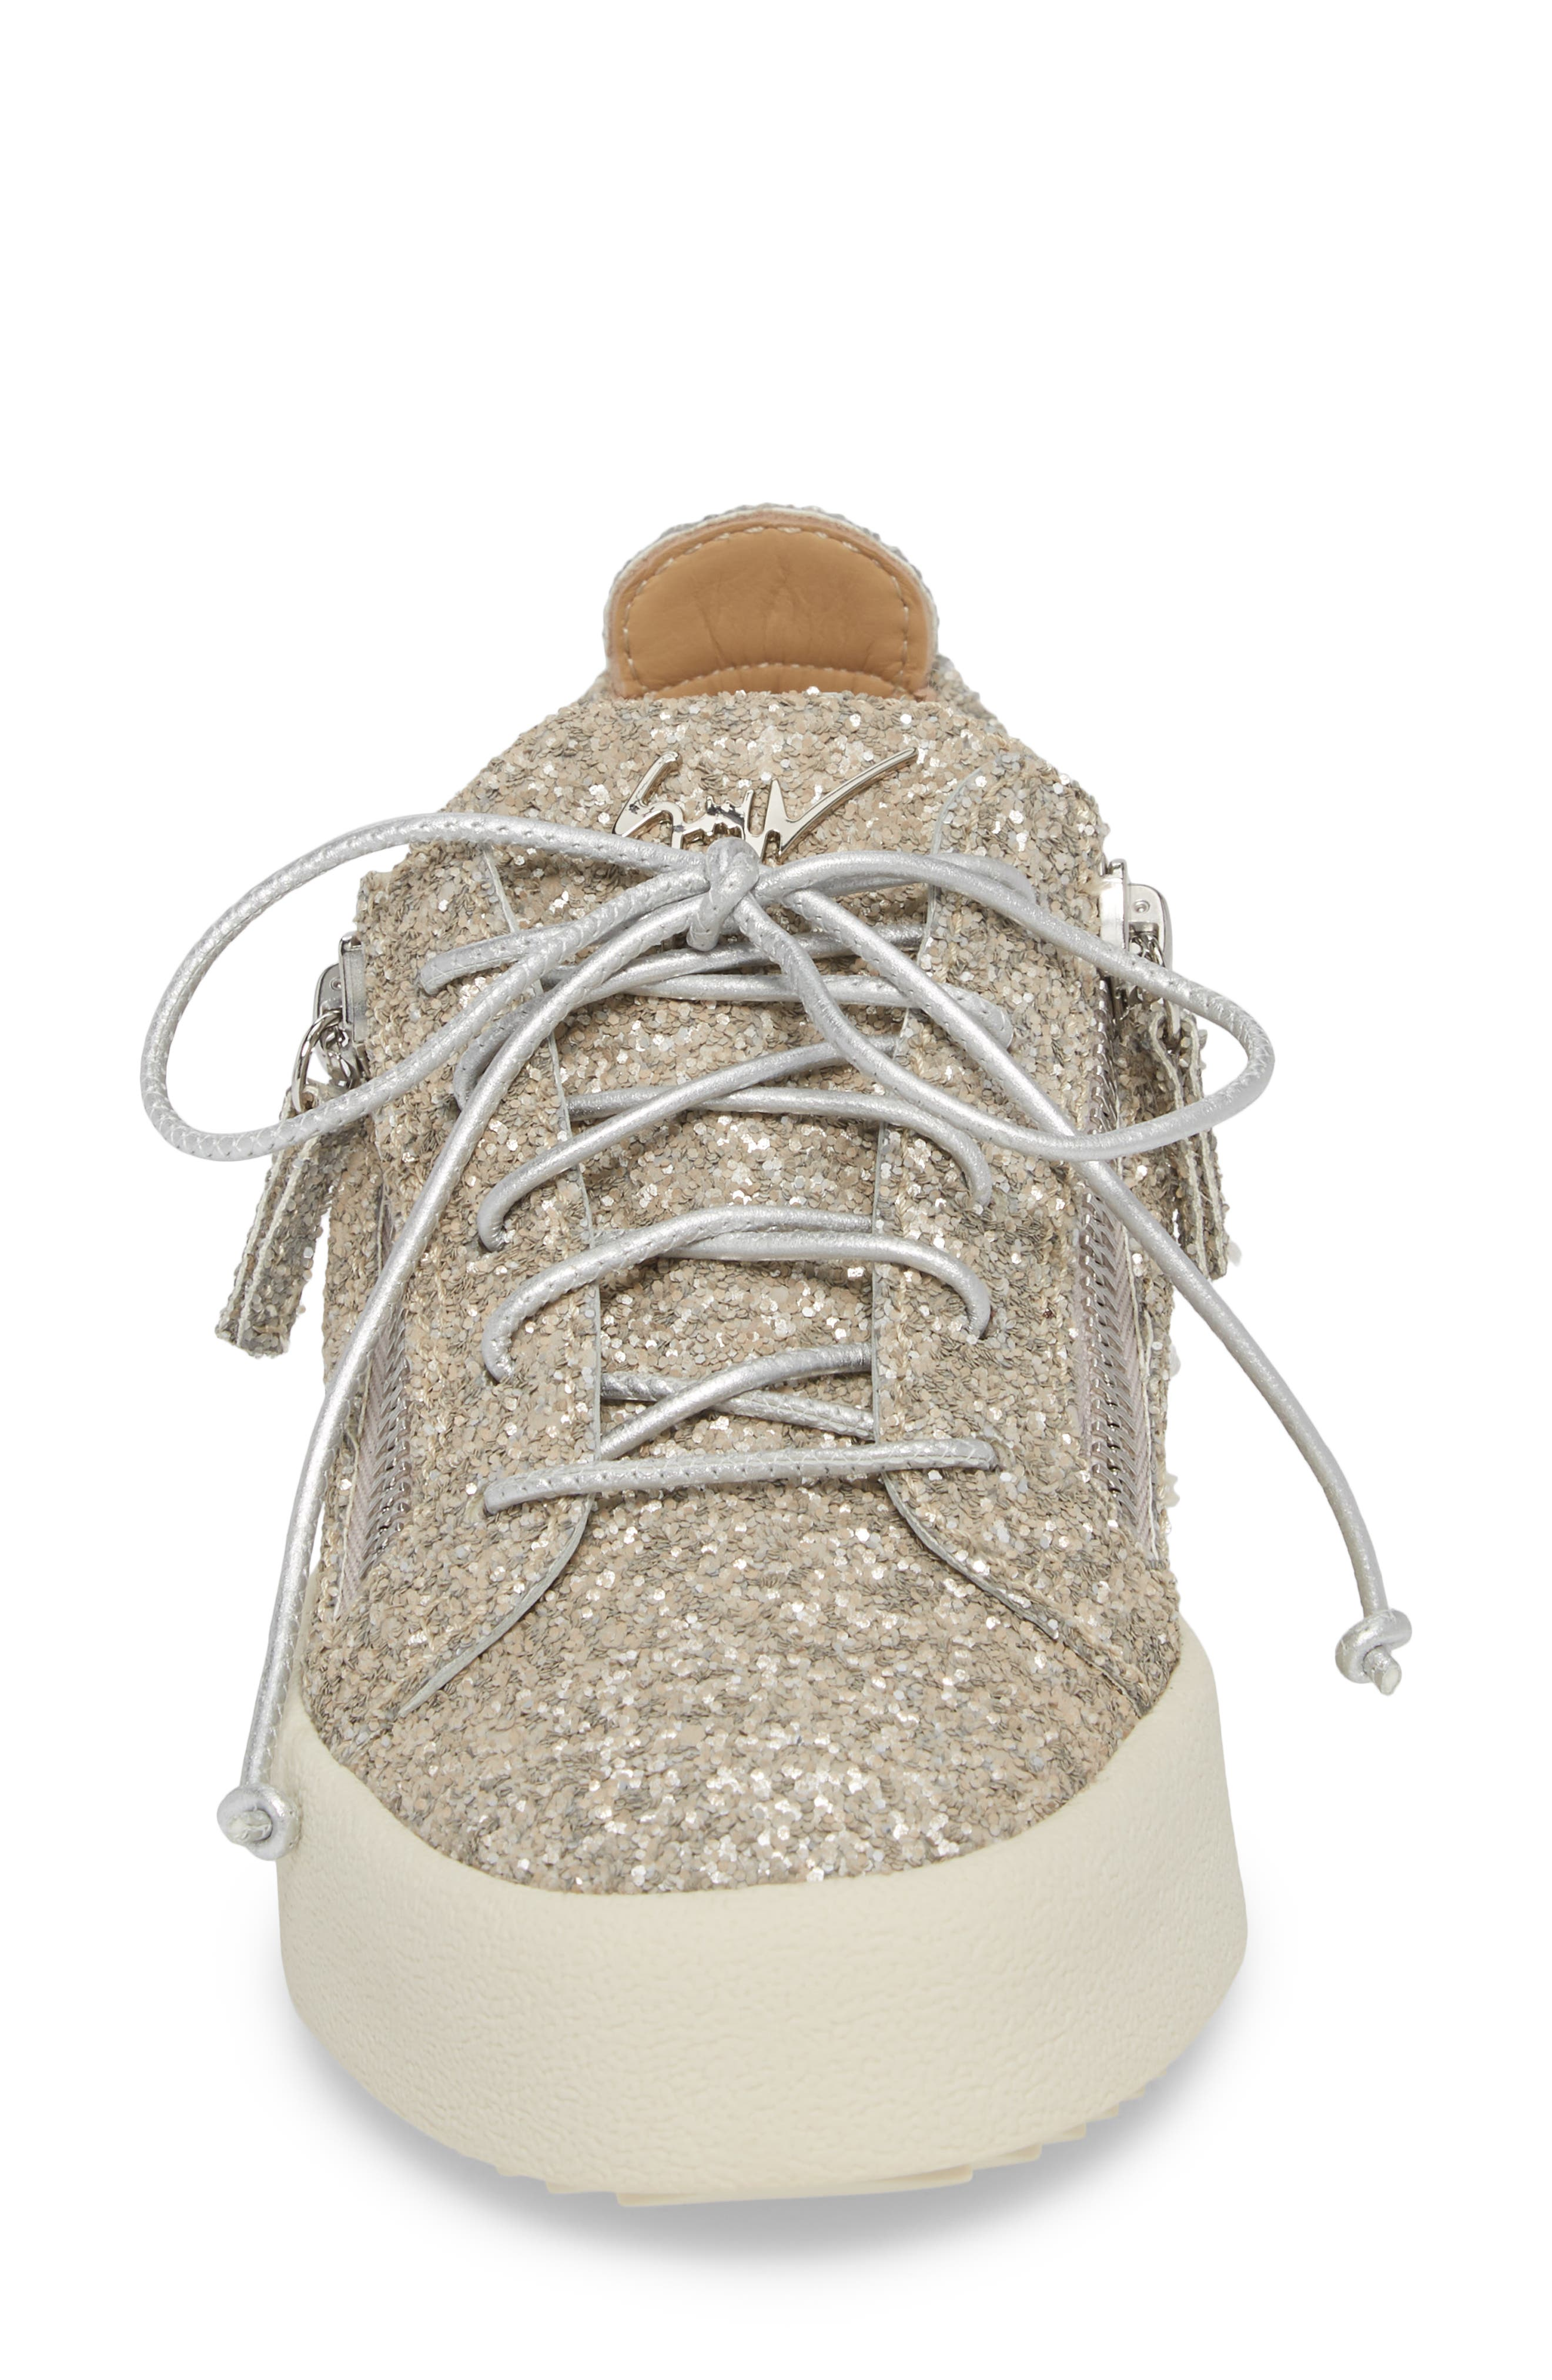 May London Low Top Sneaker,                             Alternate thumbnail 4, color,                             Champagne